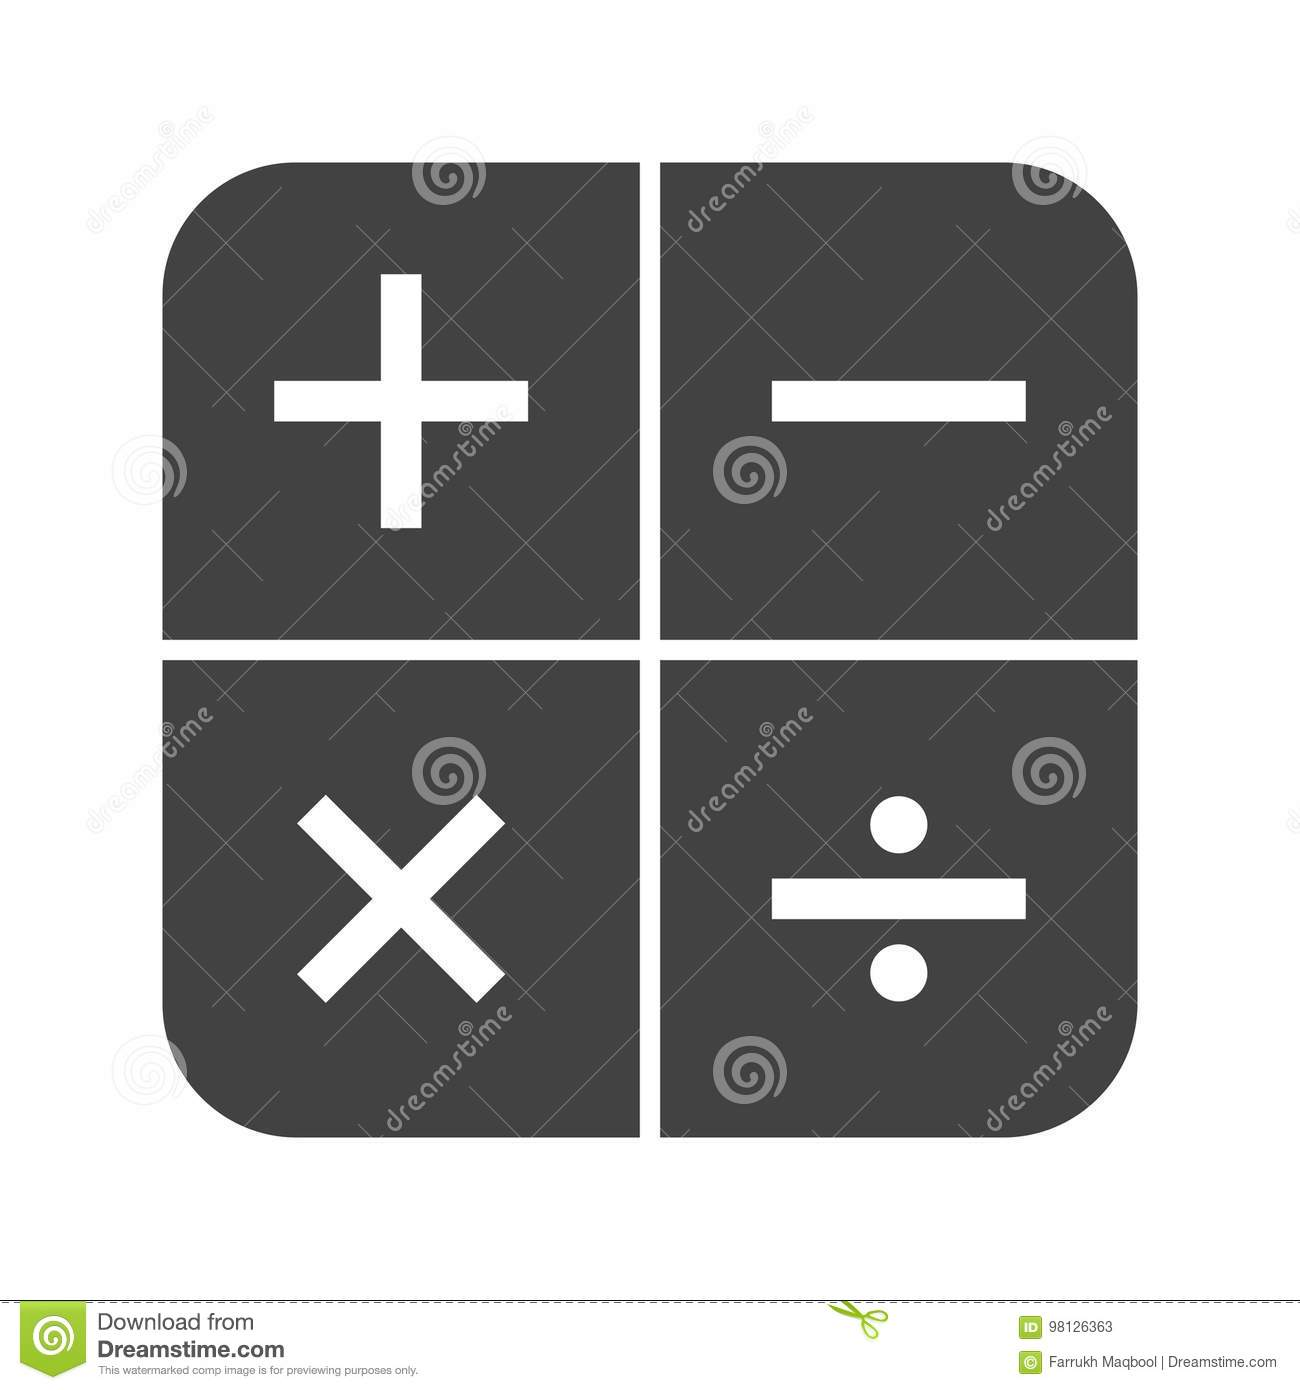 Math symbol i choice image symbol and sign ideas math symbols i stock vector illustration of learning 98126363 math symbols i buycottarizona buycottarizona